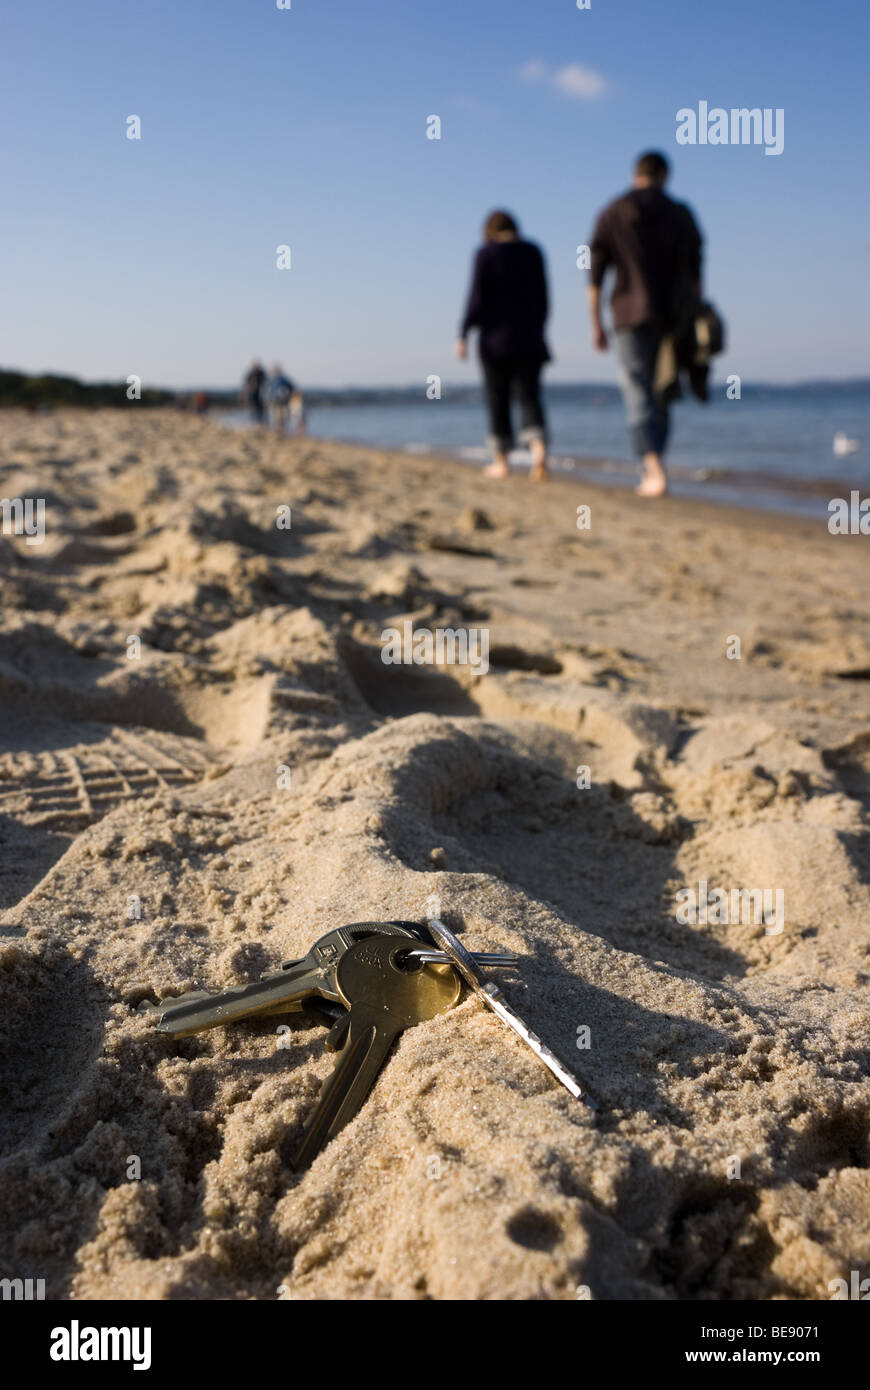 Bunch of keys lying on the sand (beach) - Stock Image